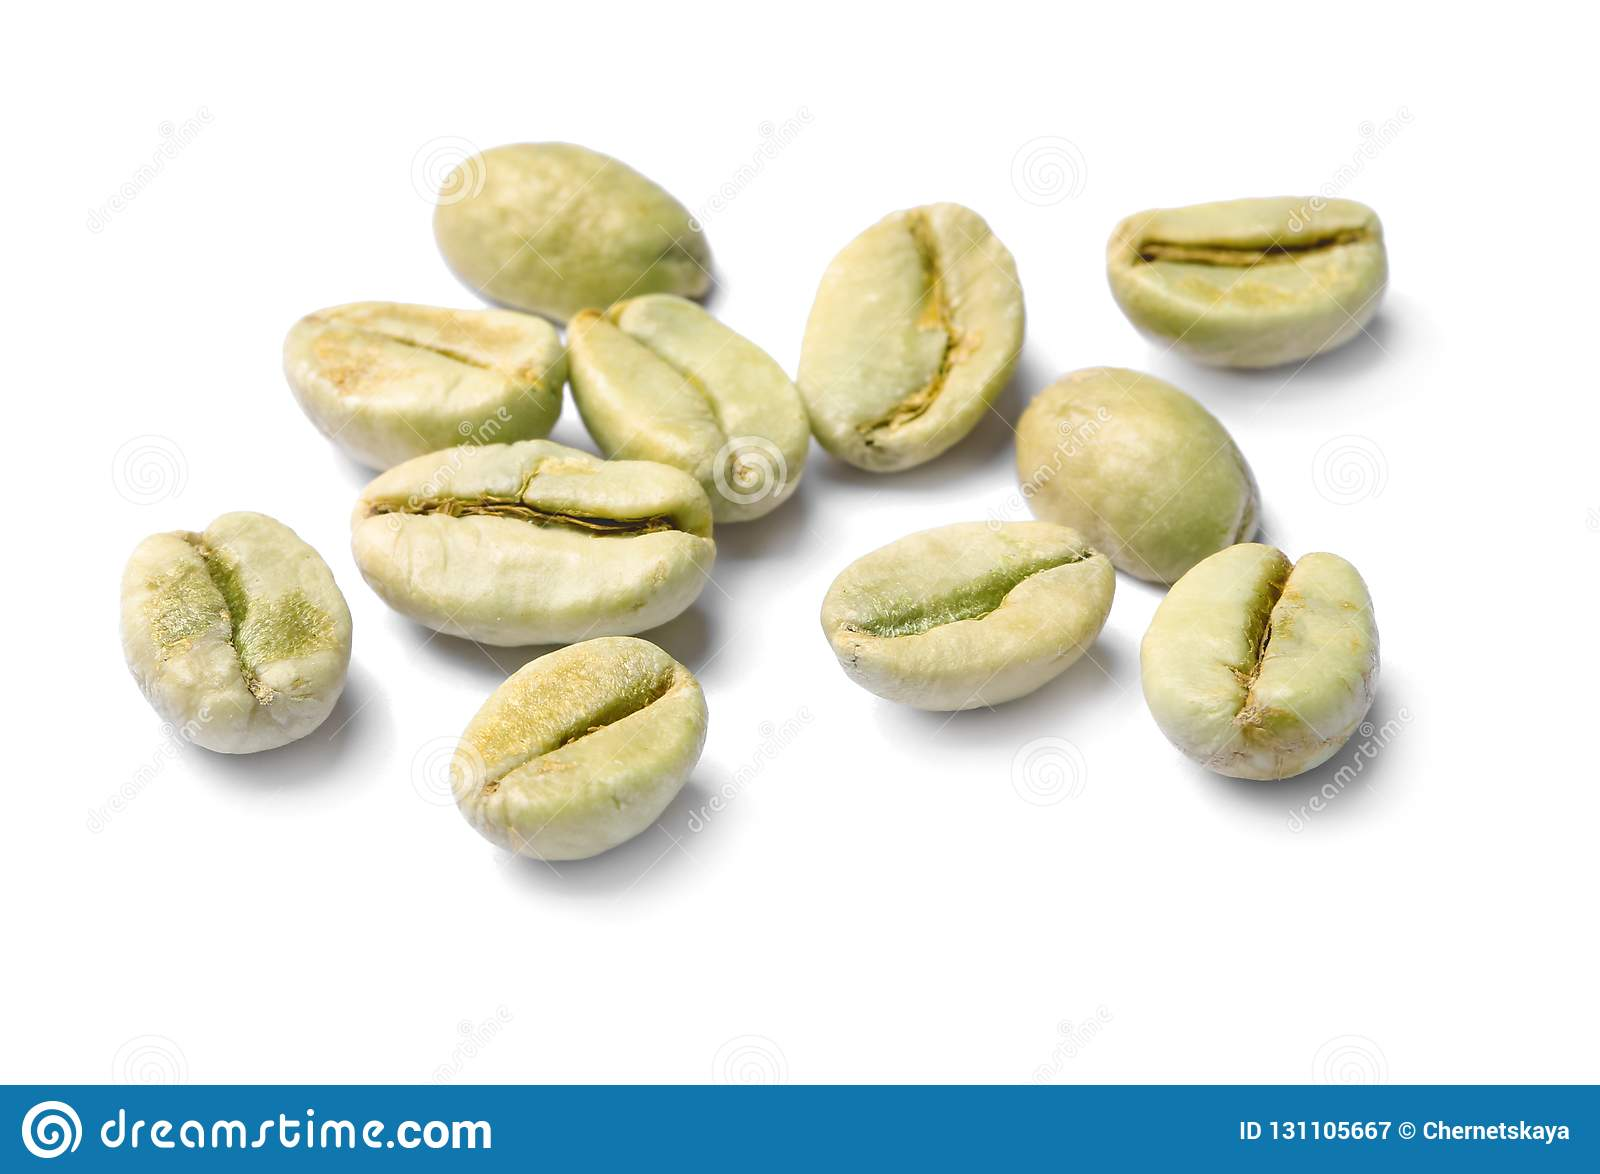 Robusta green coffee beans